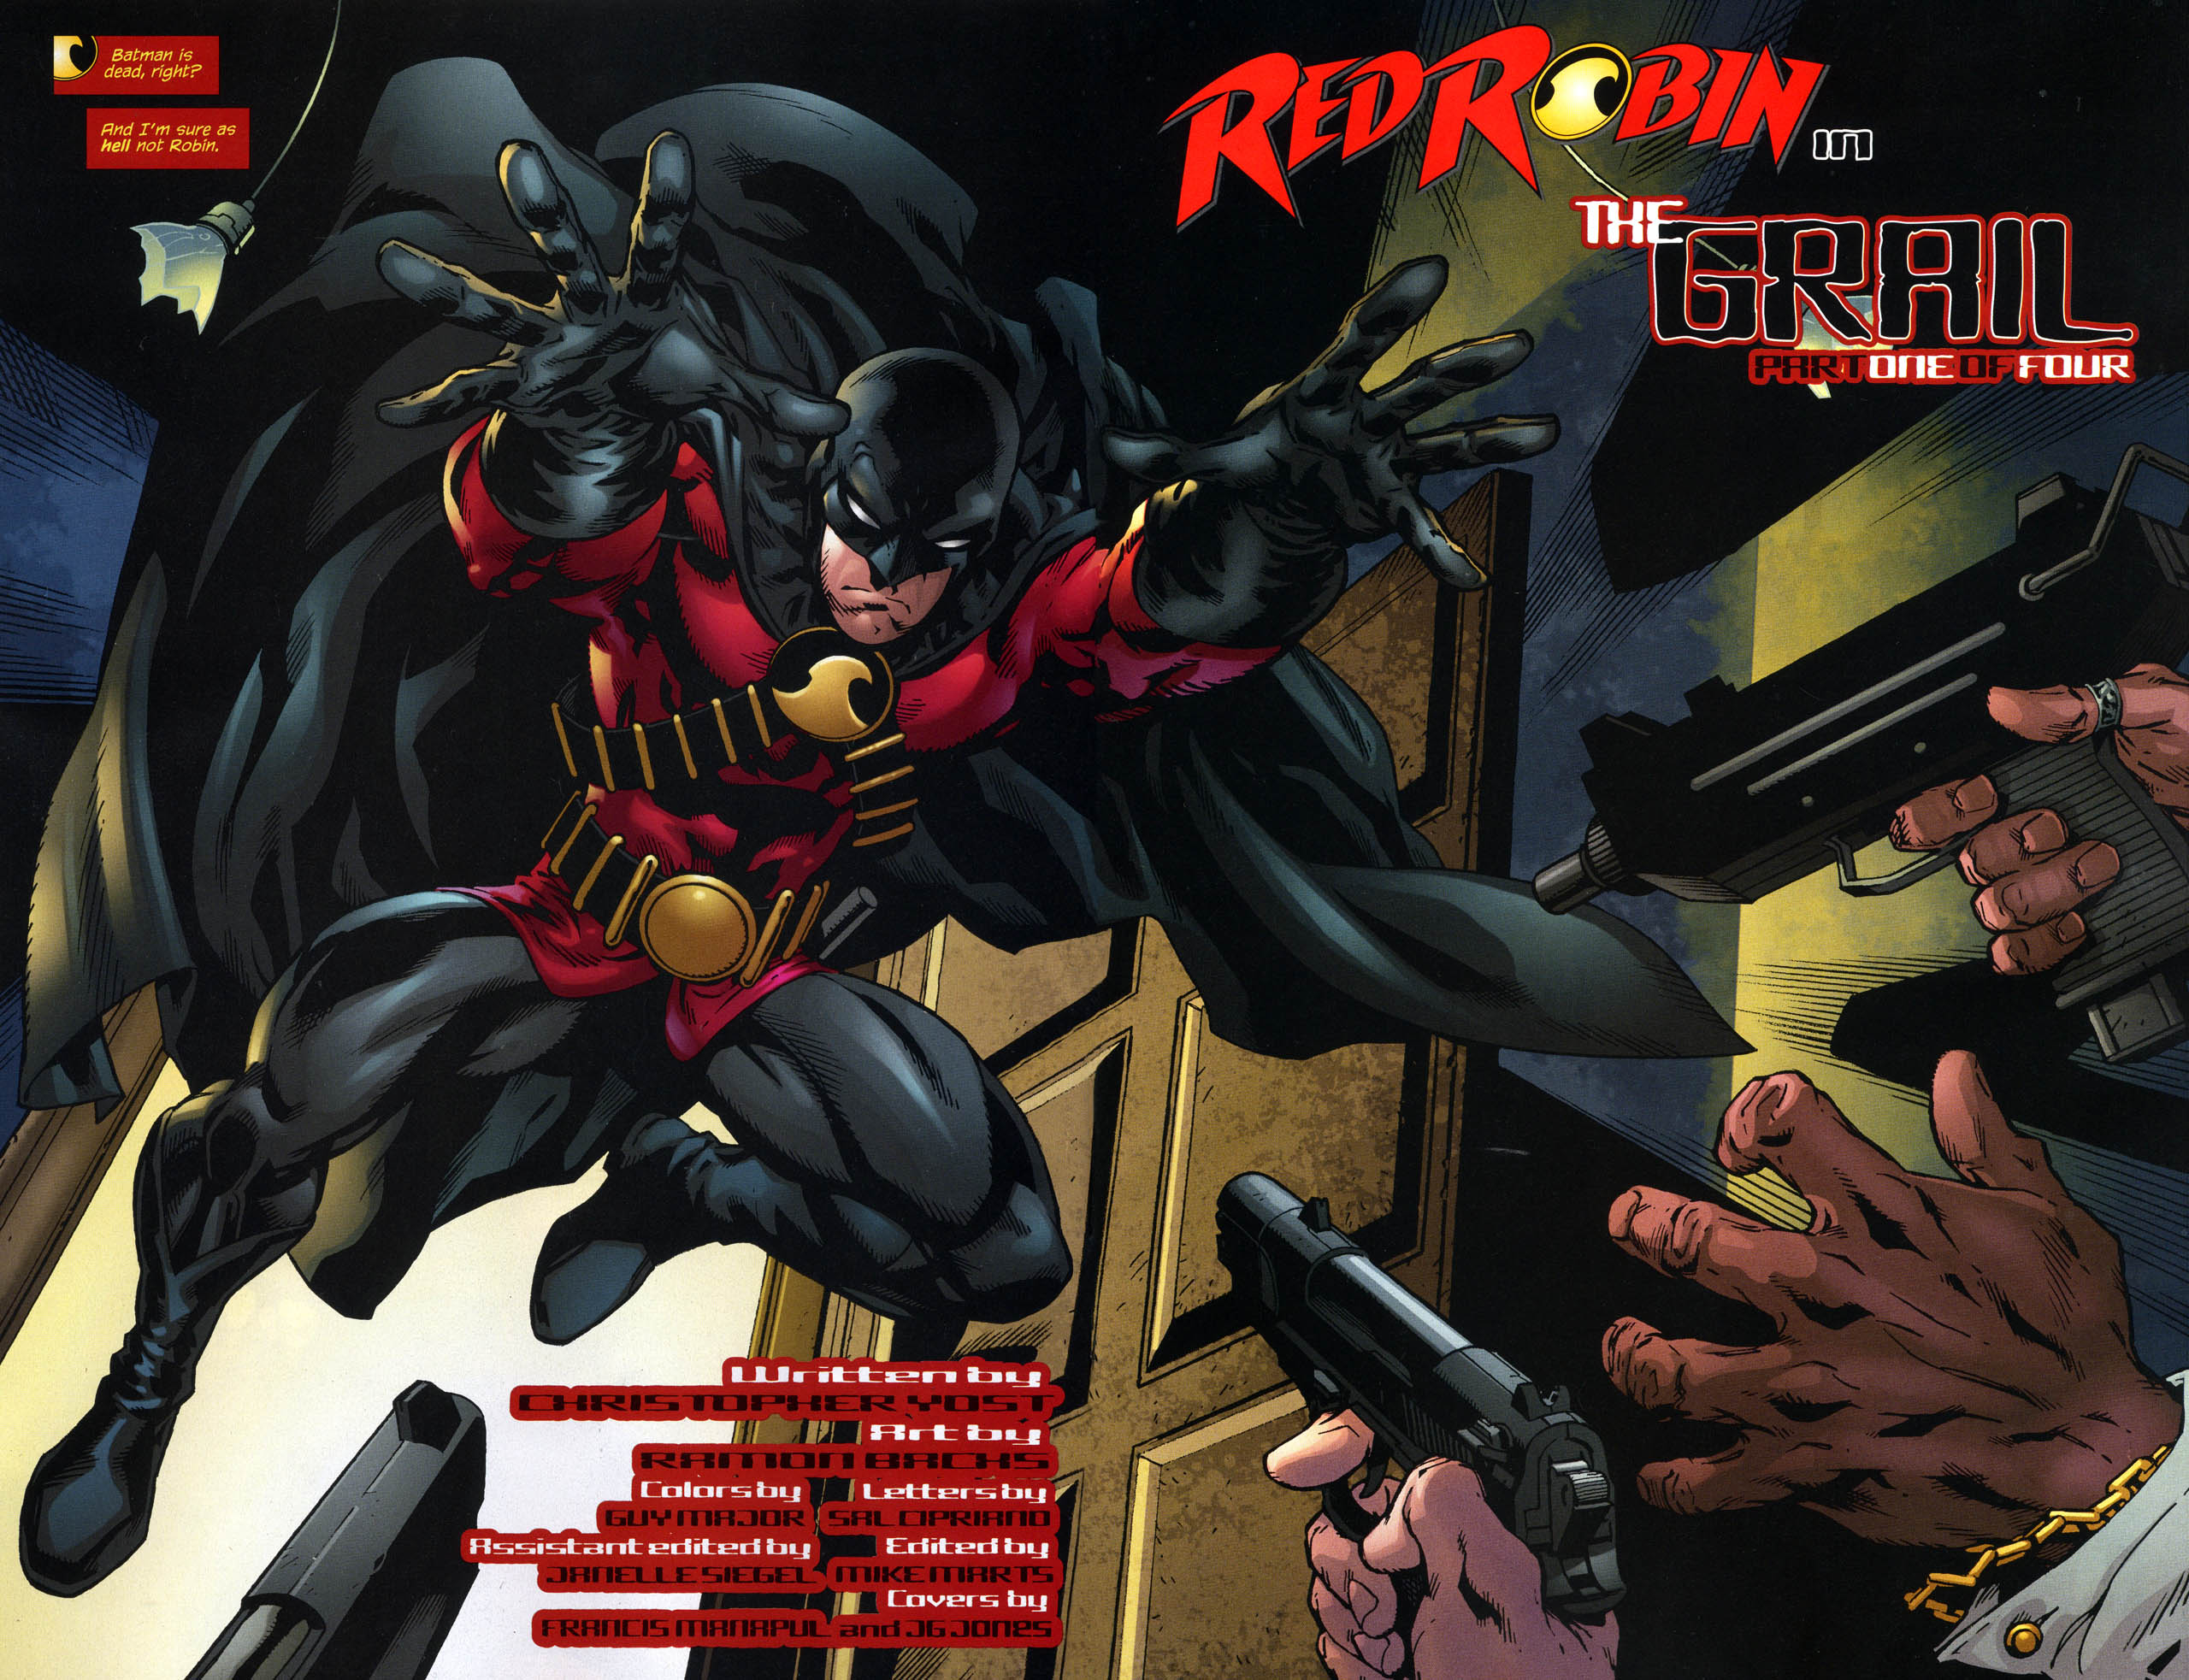 Red Robin – THE GRAIL